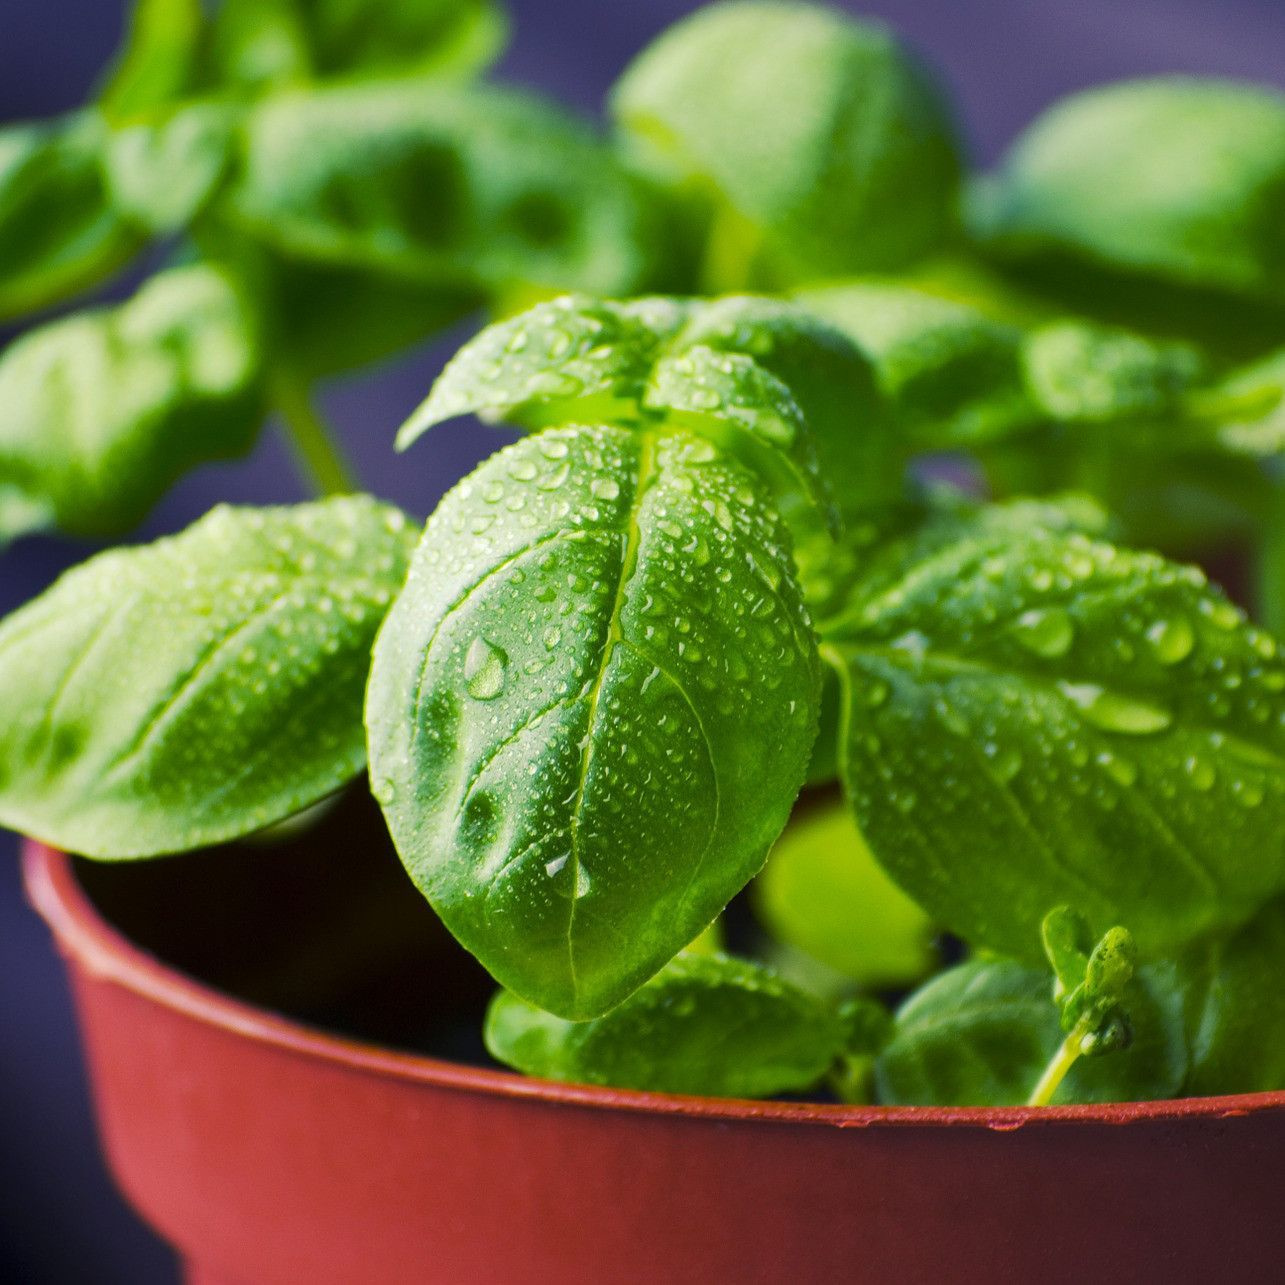 Basil Olive Oil #plantsthatrepelmosquitoes